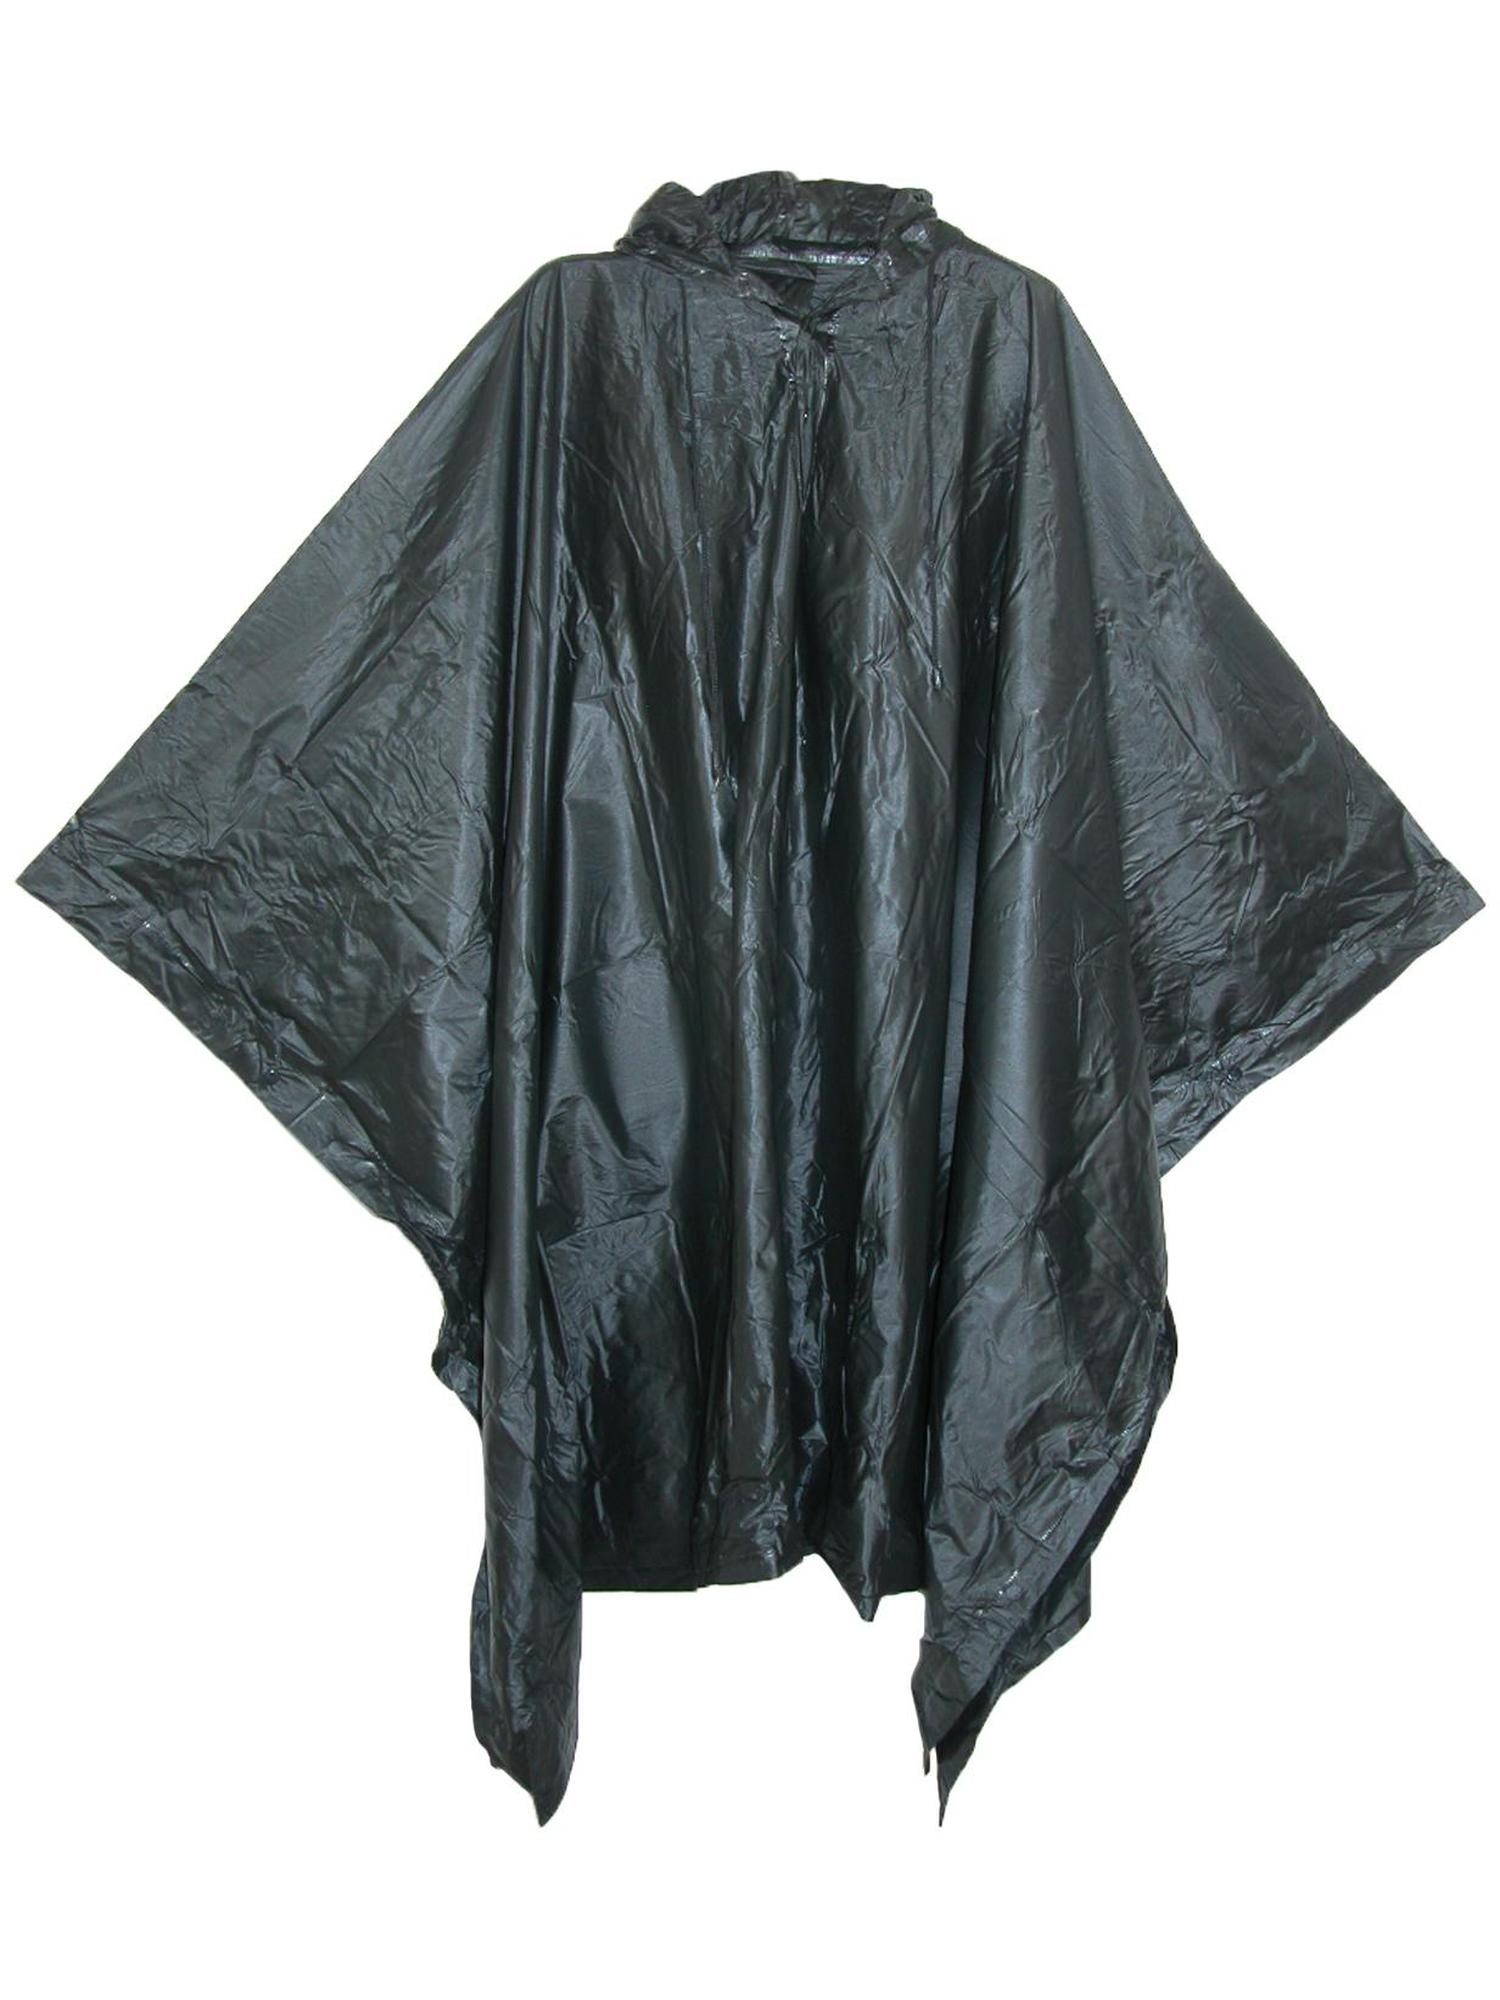 MEDIUM PONCHO FOR RAIN WITH HOOD UNISEX//BLUE NAVY HEAVY DUTY AGES 12 - Adults